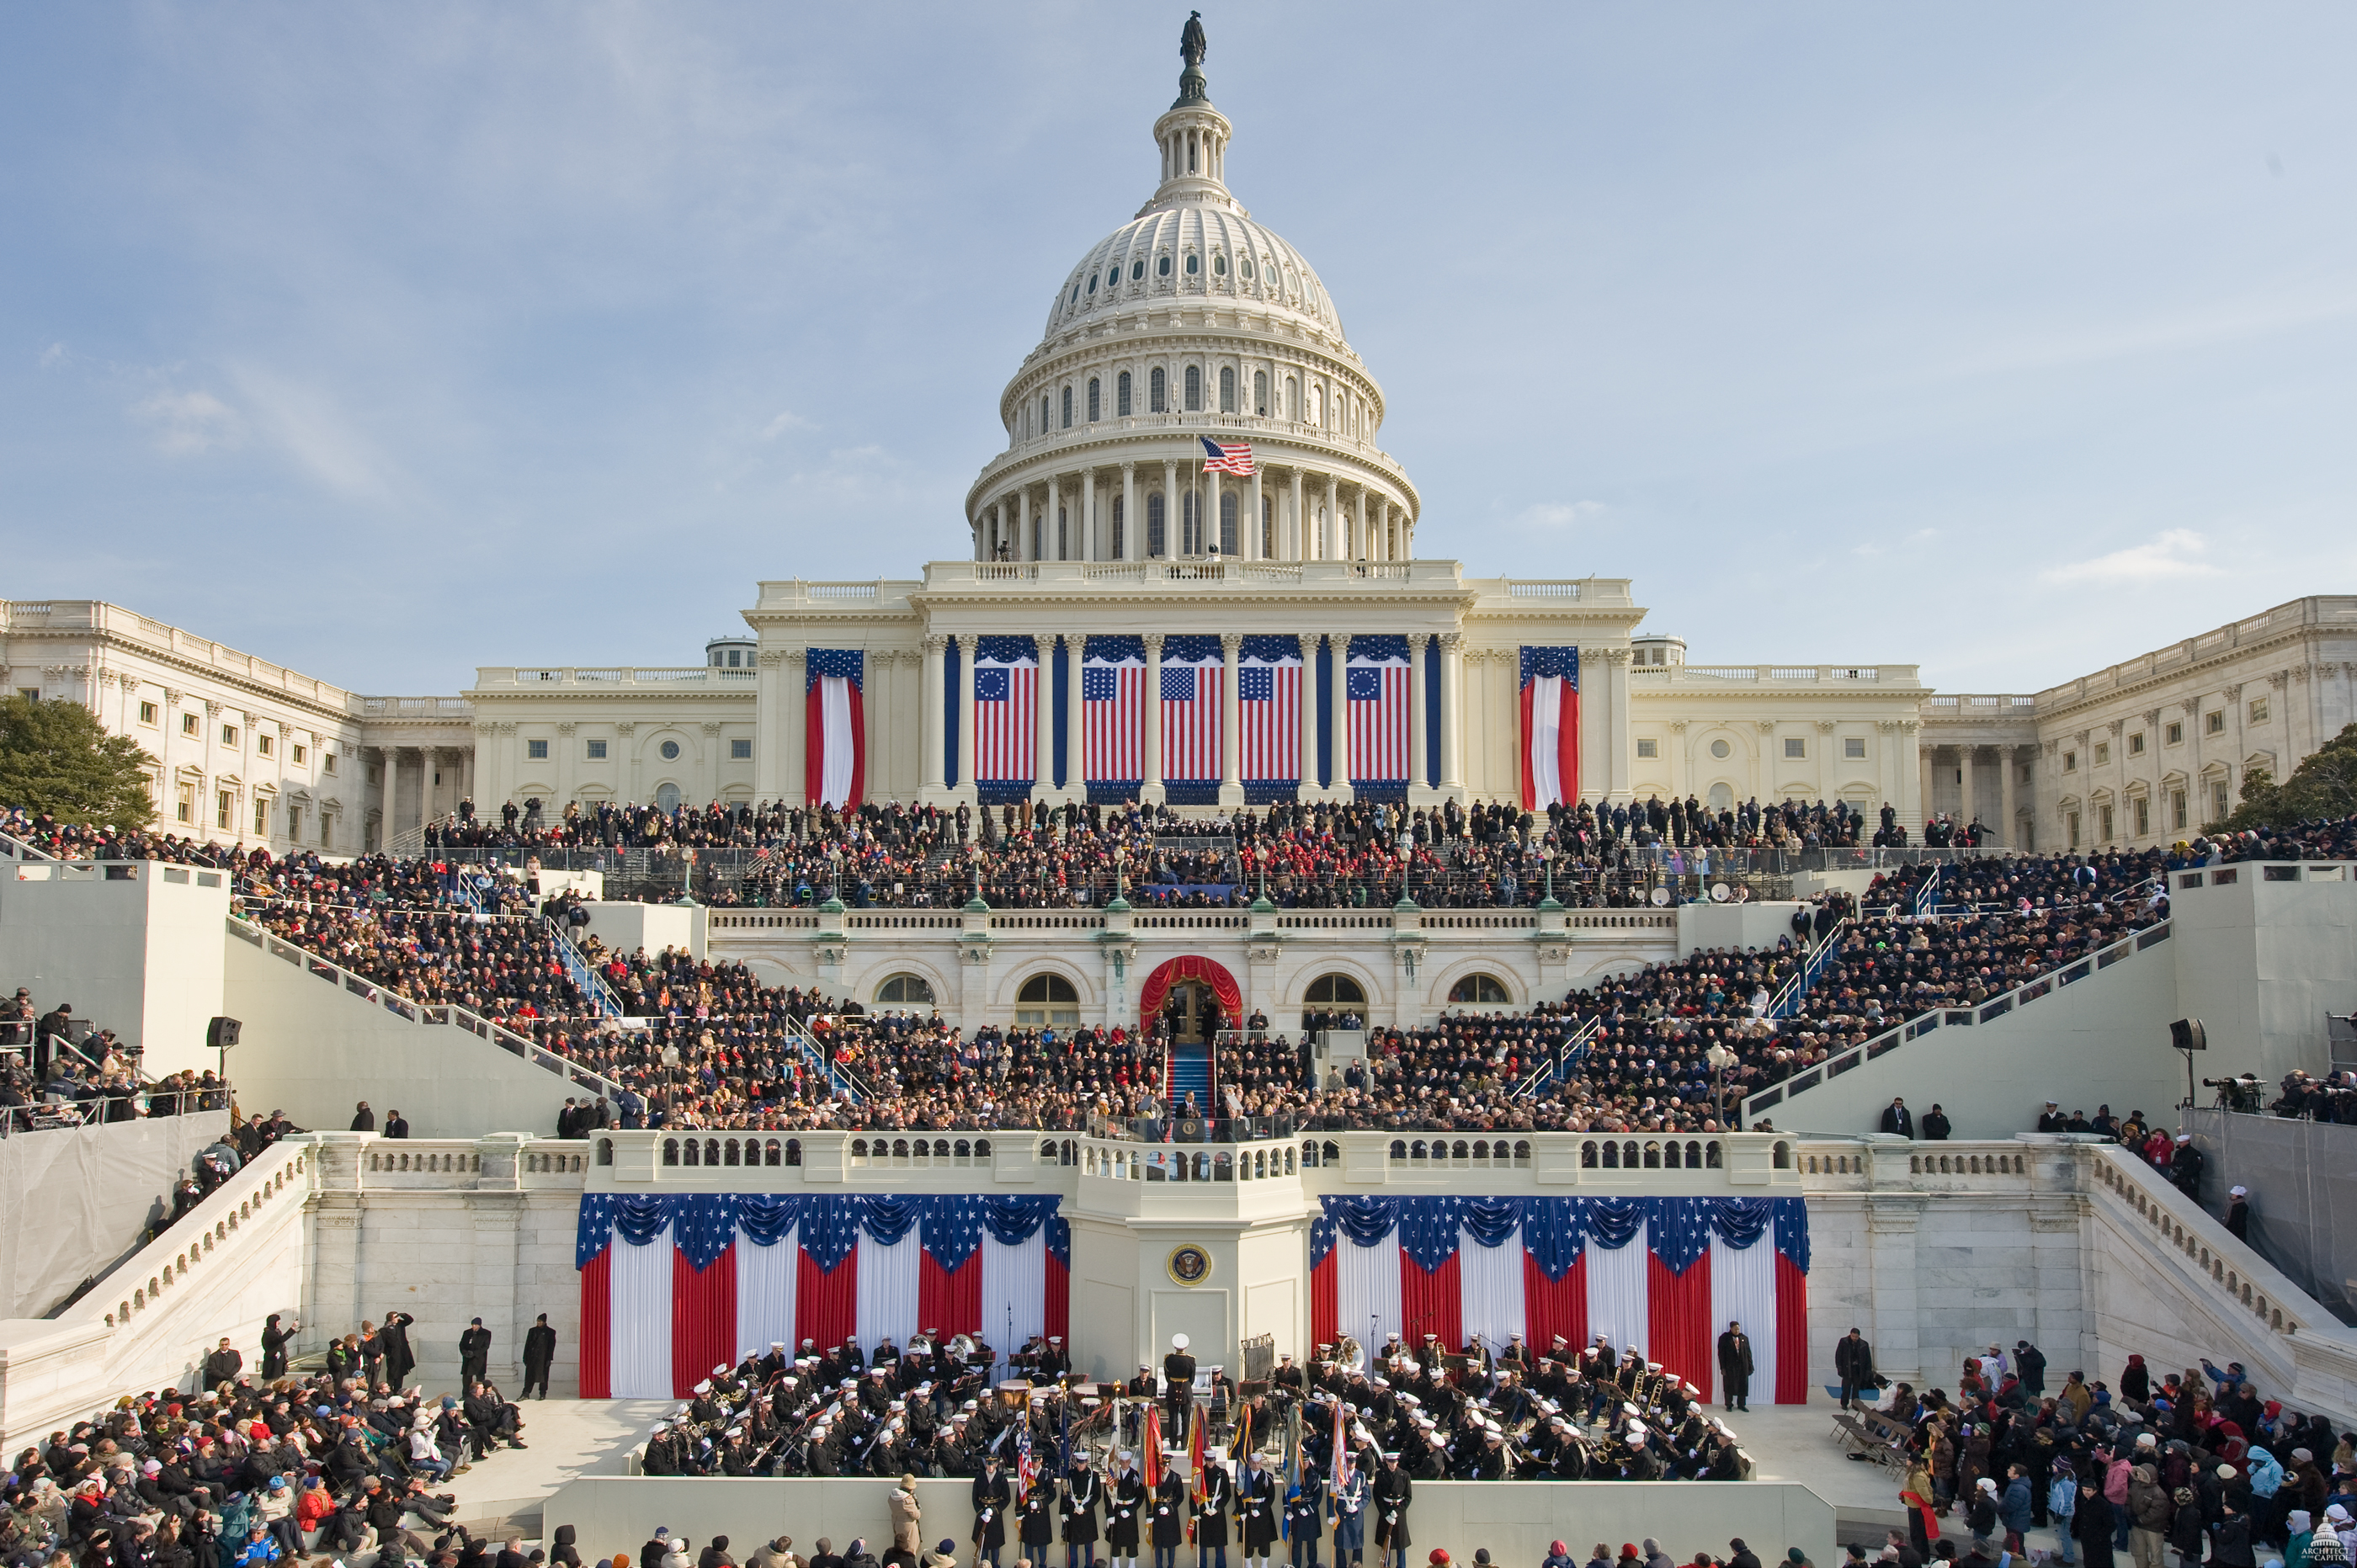 Upper School Students Get Chance to Watch Inauguration